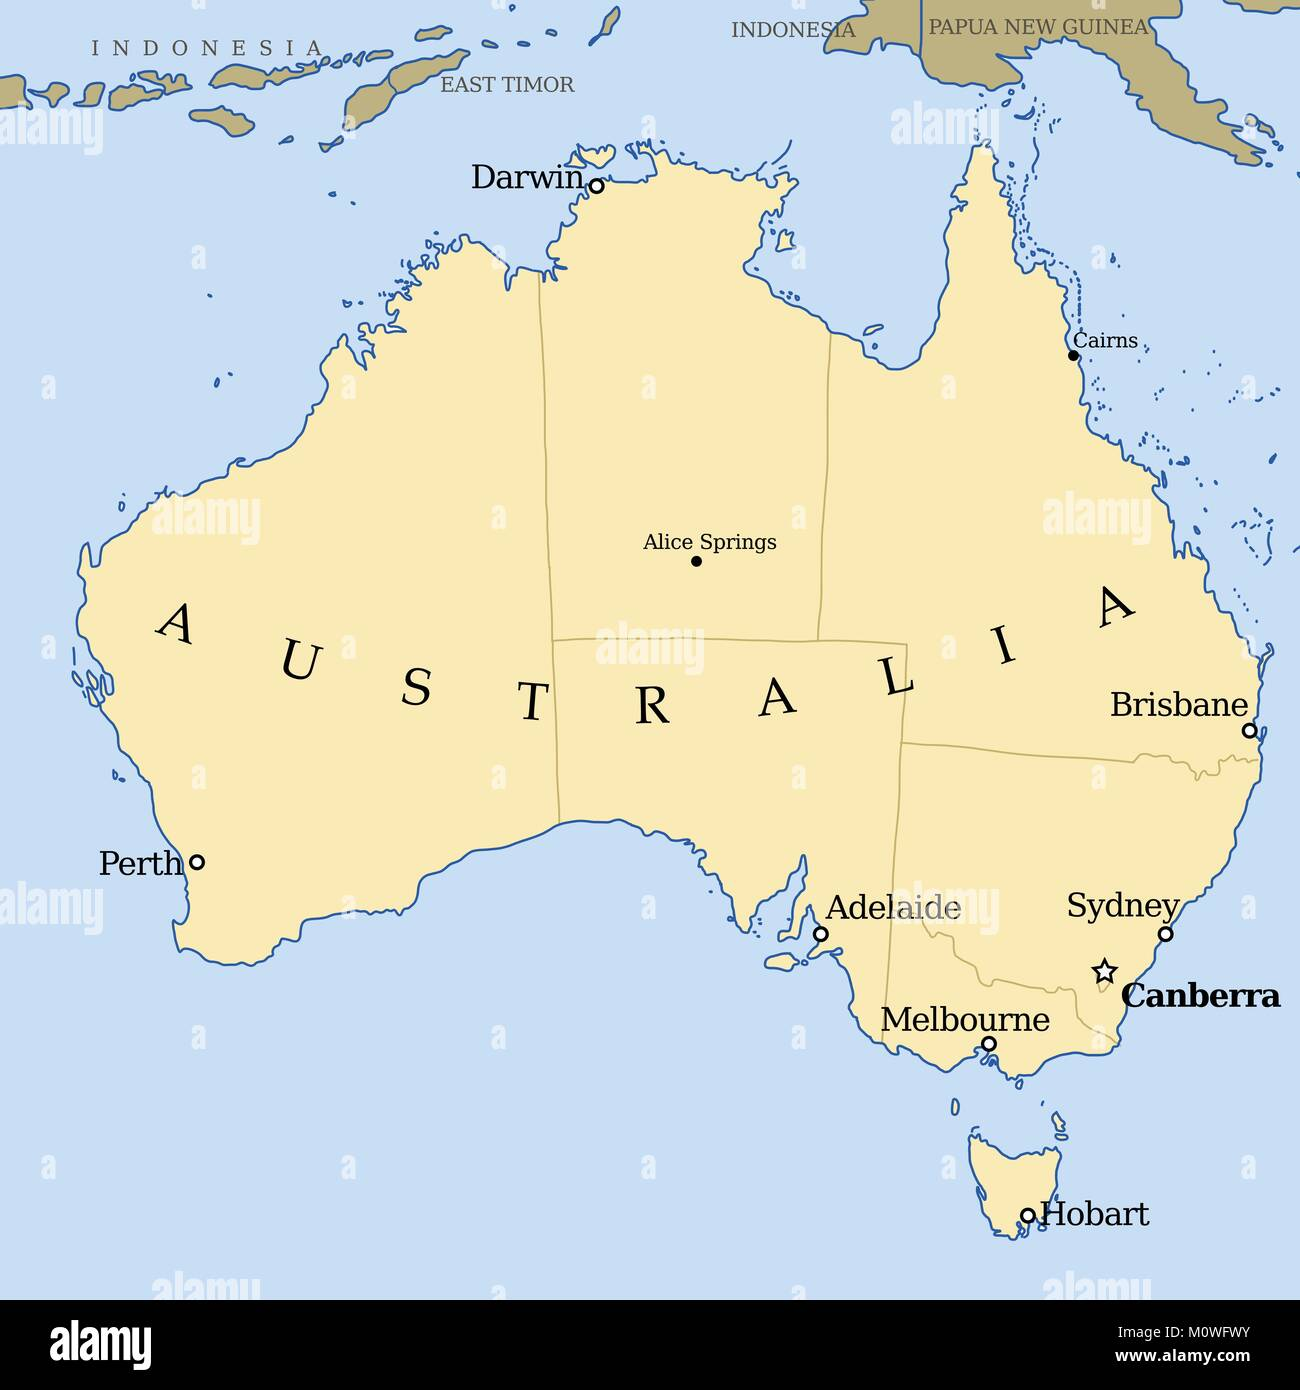 Cities Of Australia Map.Australia Map Vector Illustration Political Map With Cities Stock